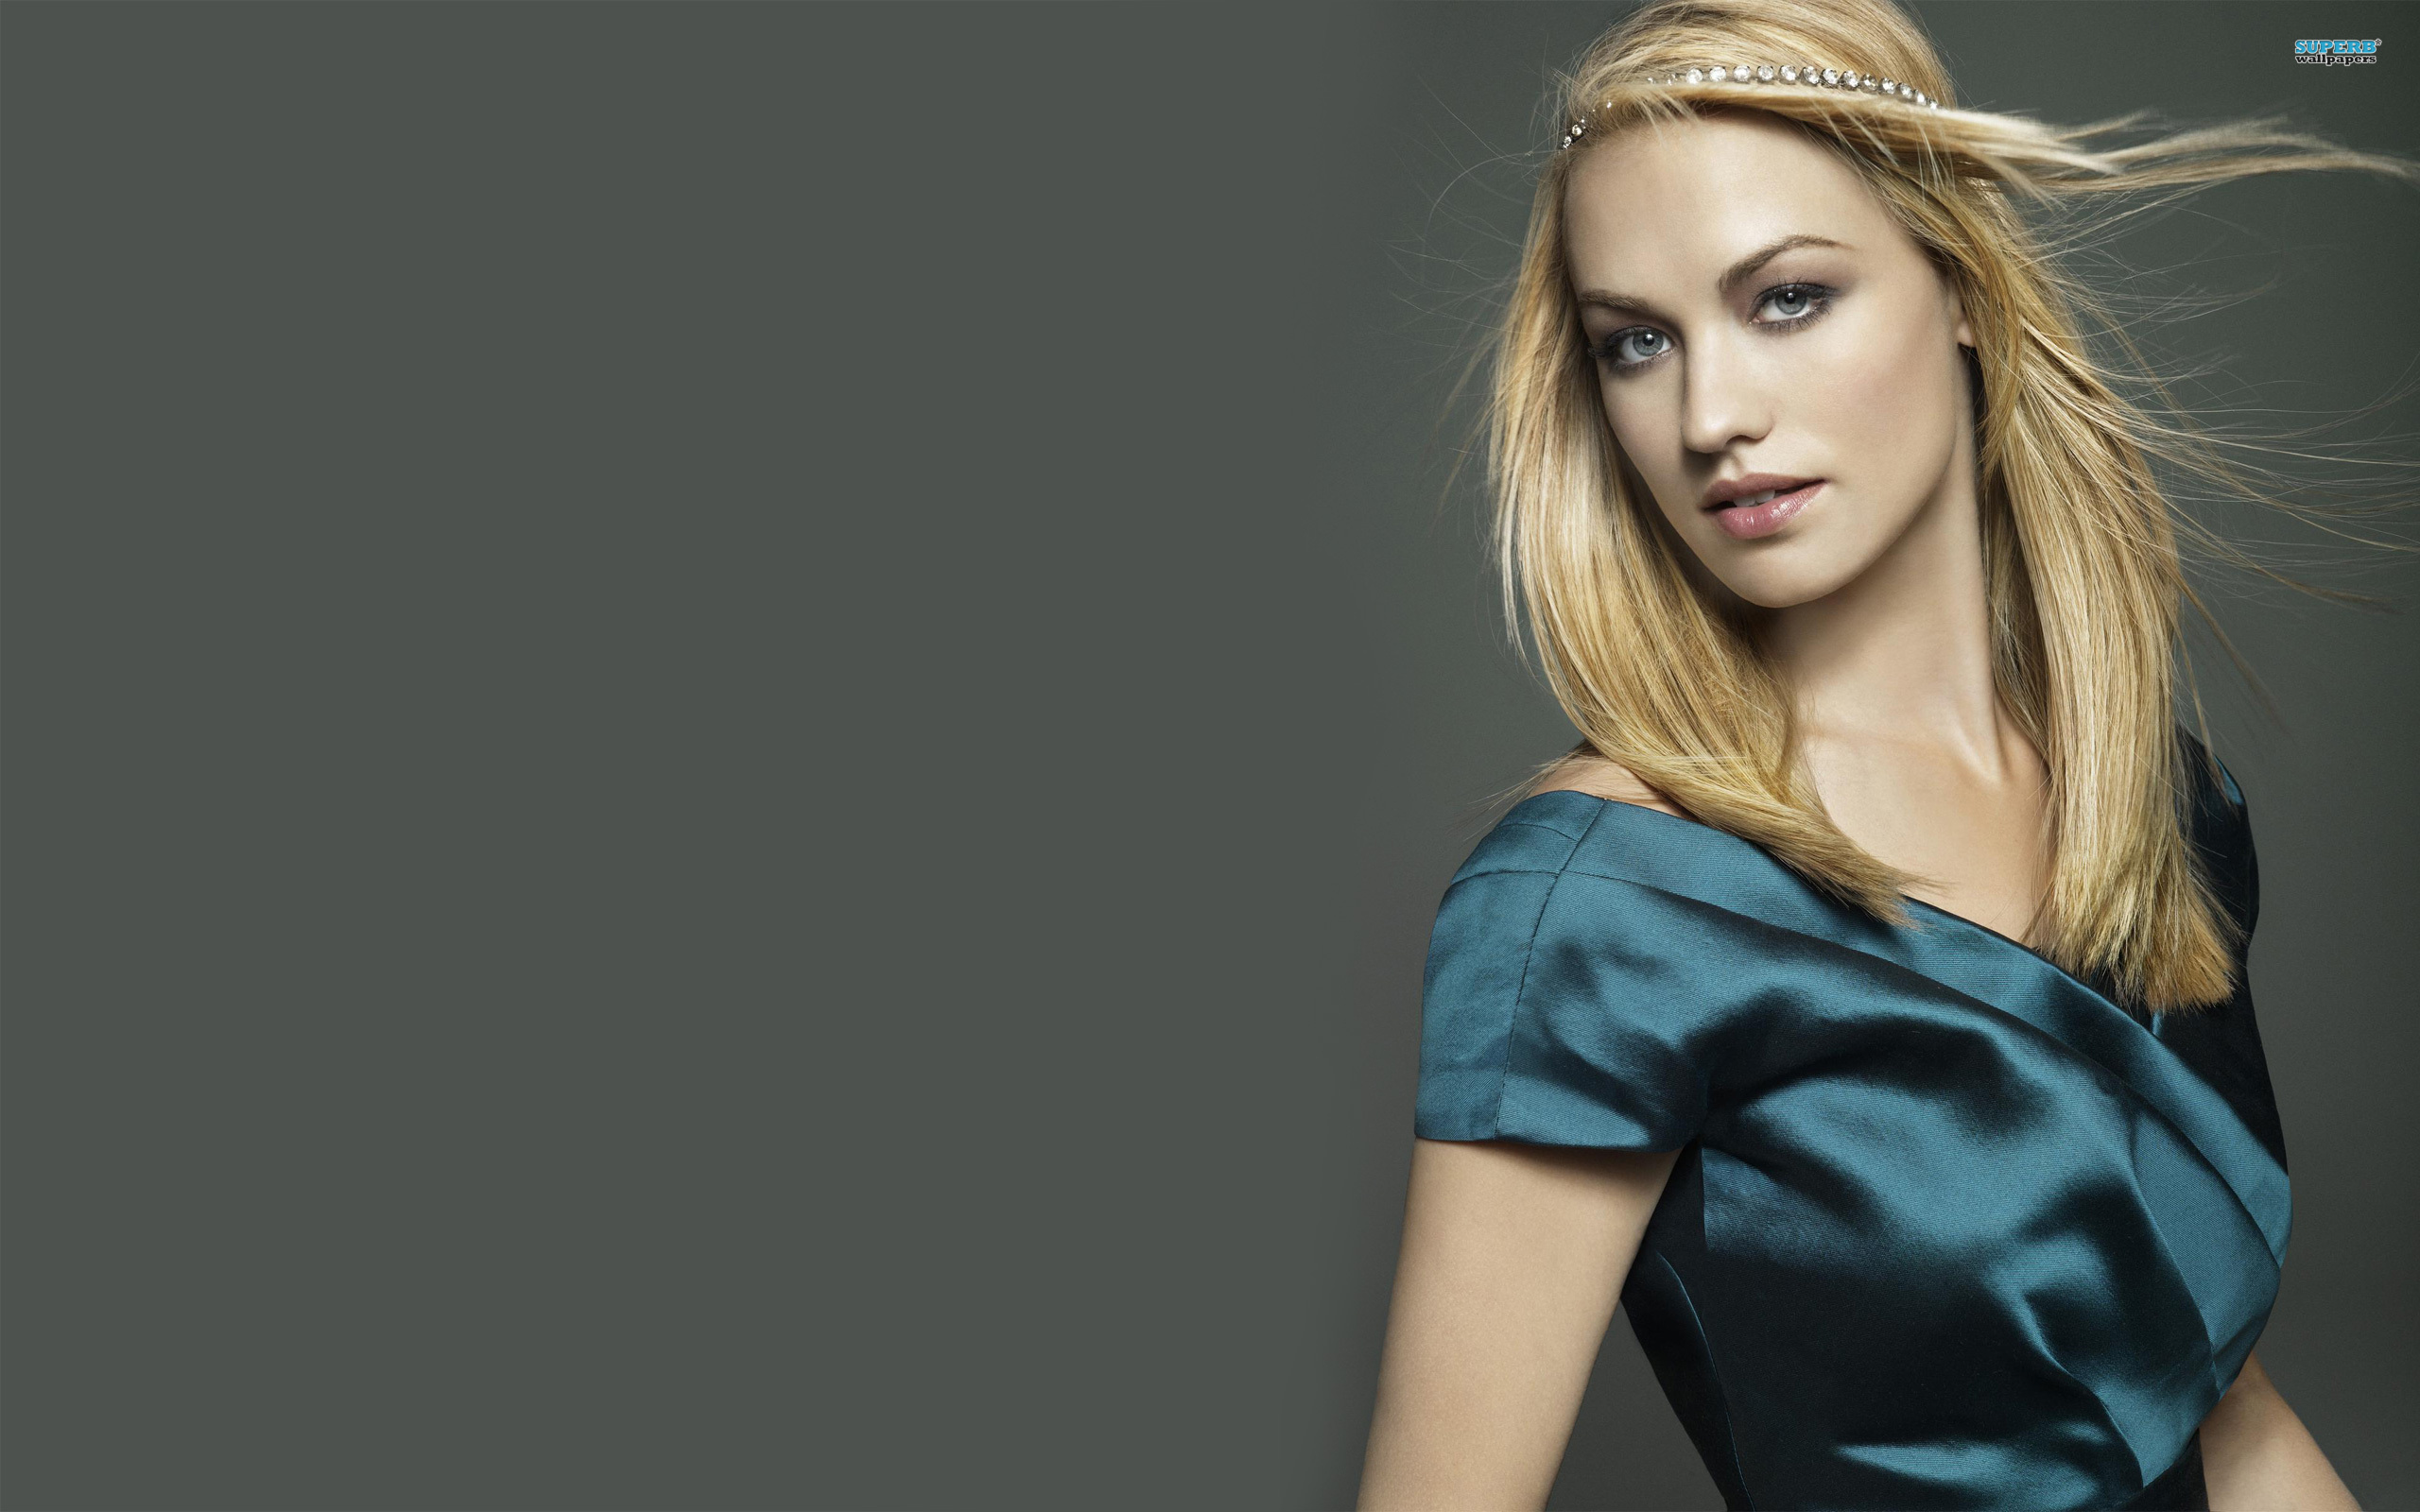 Beautiful Yvonne Strahovski Amazing Wallpaper   Imgur 2560x1600